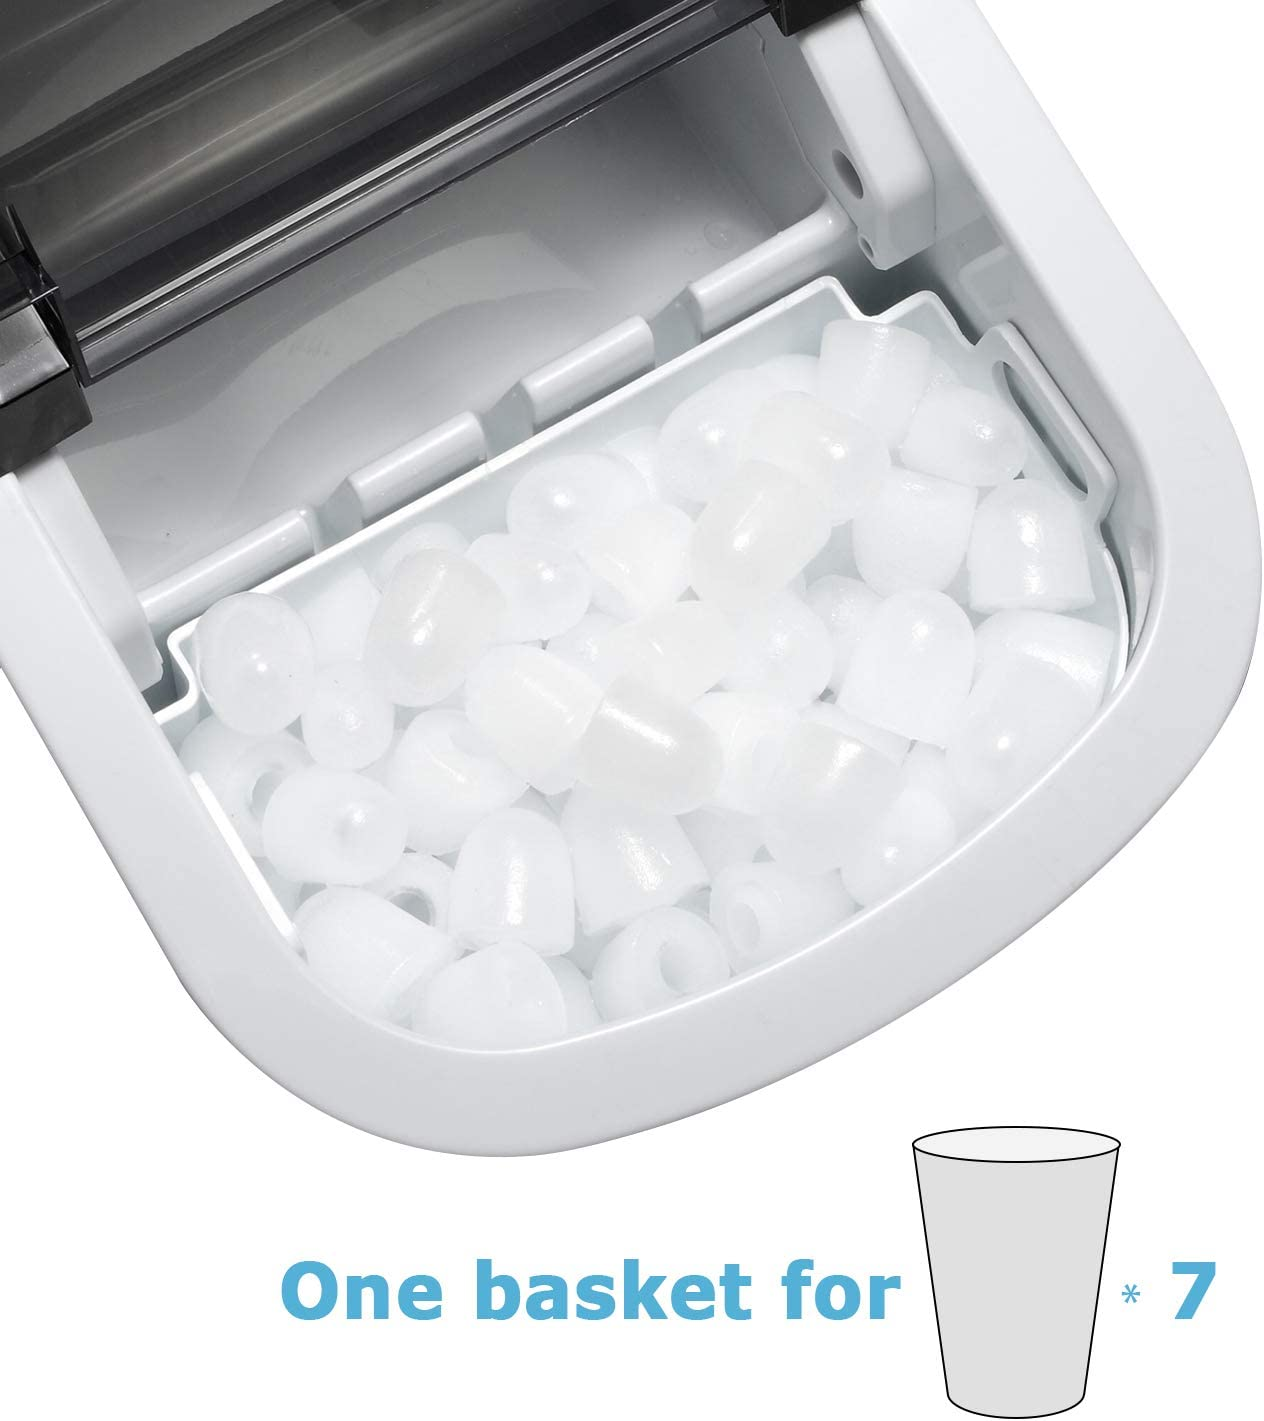 9 Ice Cubes Ready in 6 Mins Stainless Steel Ice Maker with Ice Scoop and Basket Full Stainless Steel Tavata Countertop Portable Ice Maker Machine Makes 26 lbs of Ice per 24 Hours